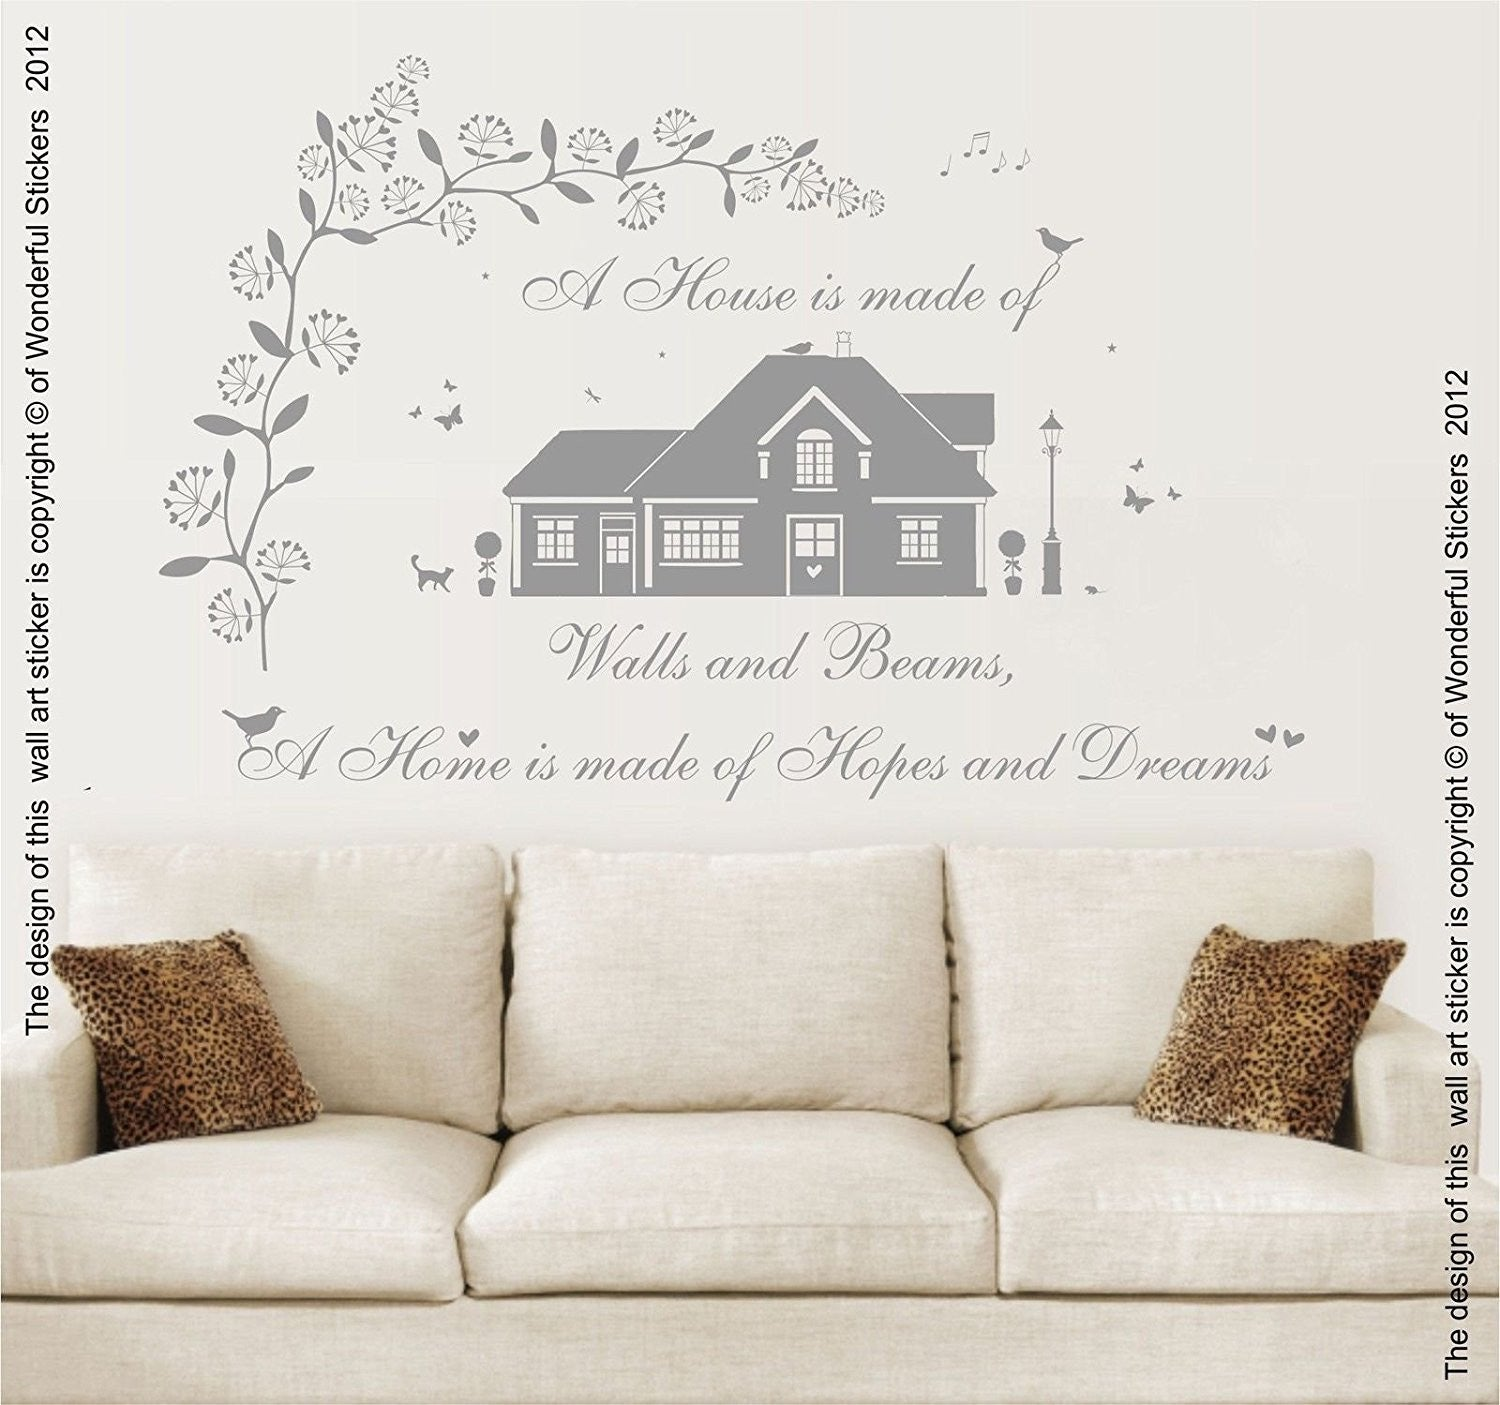 A Home Is Made Of Hopes U0026 Dreams, Vinyl Wall Art Sticker. Mural, Decal.  Home, Wall Decor, Family, Home, Quote. Living Room, Bedroom, Dining Room,  Kitchen. Part 83